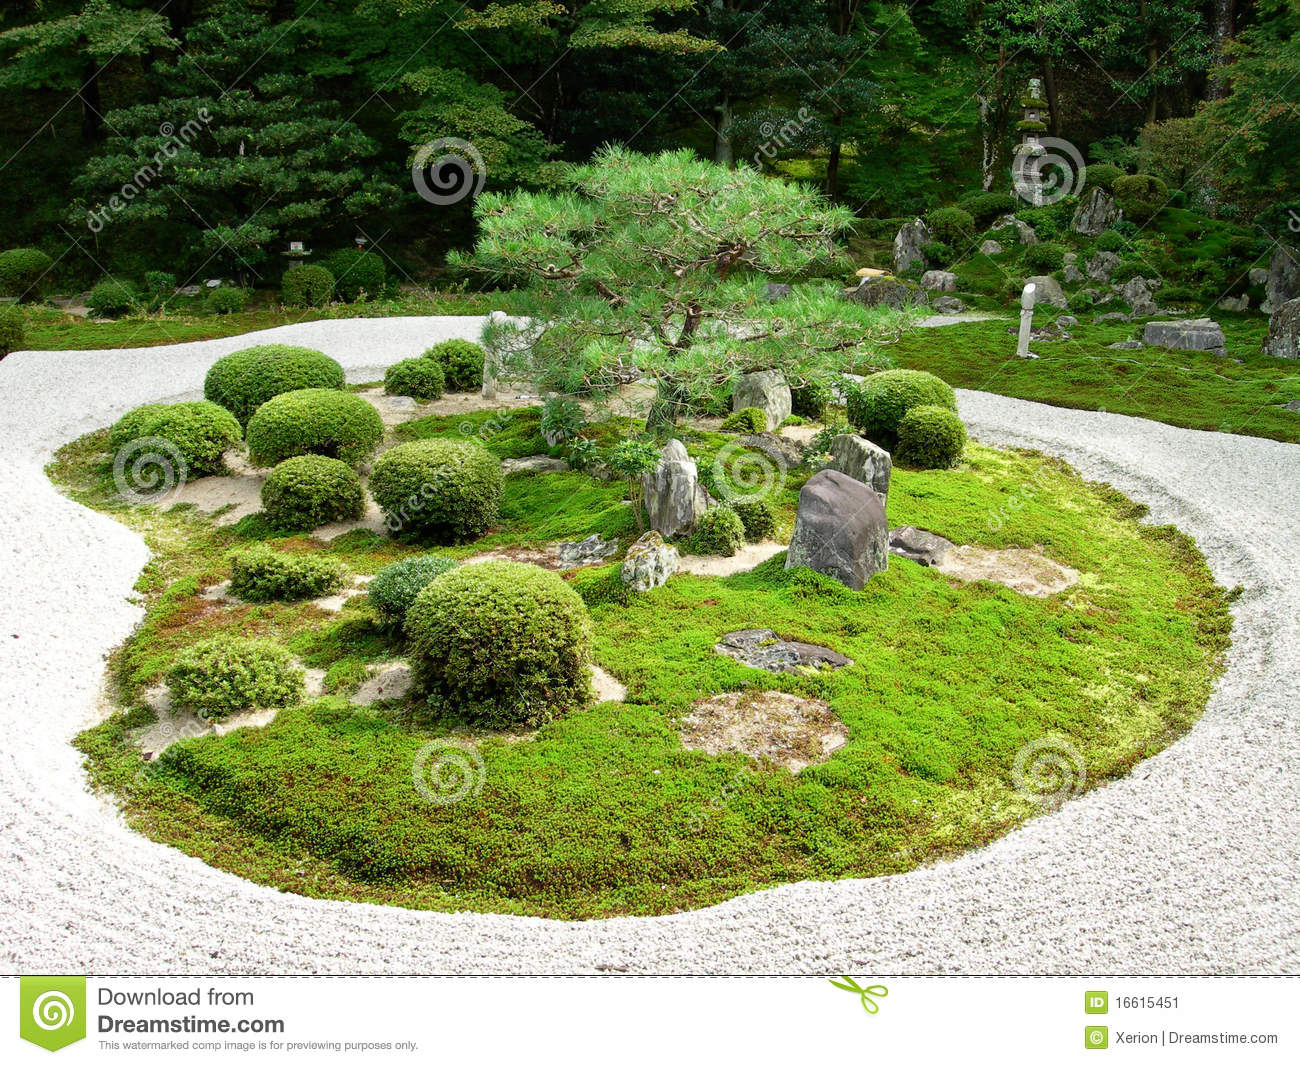 a japanese stone garden stock image image 16615451. Black Bedroom Furniture Sets. Home Design Ideas